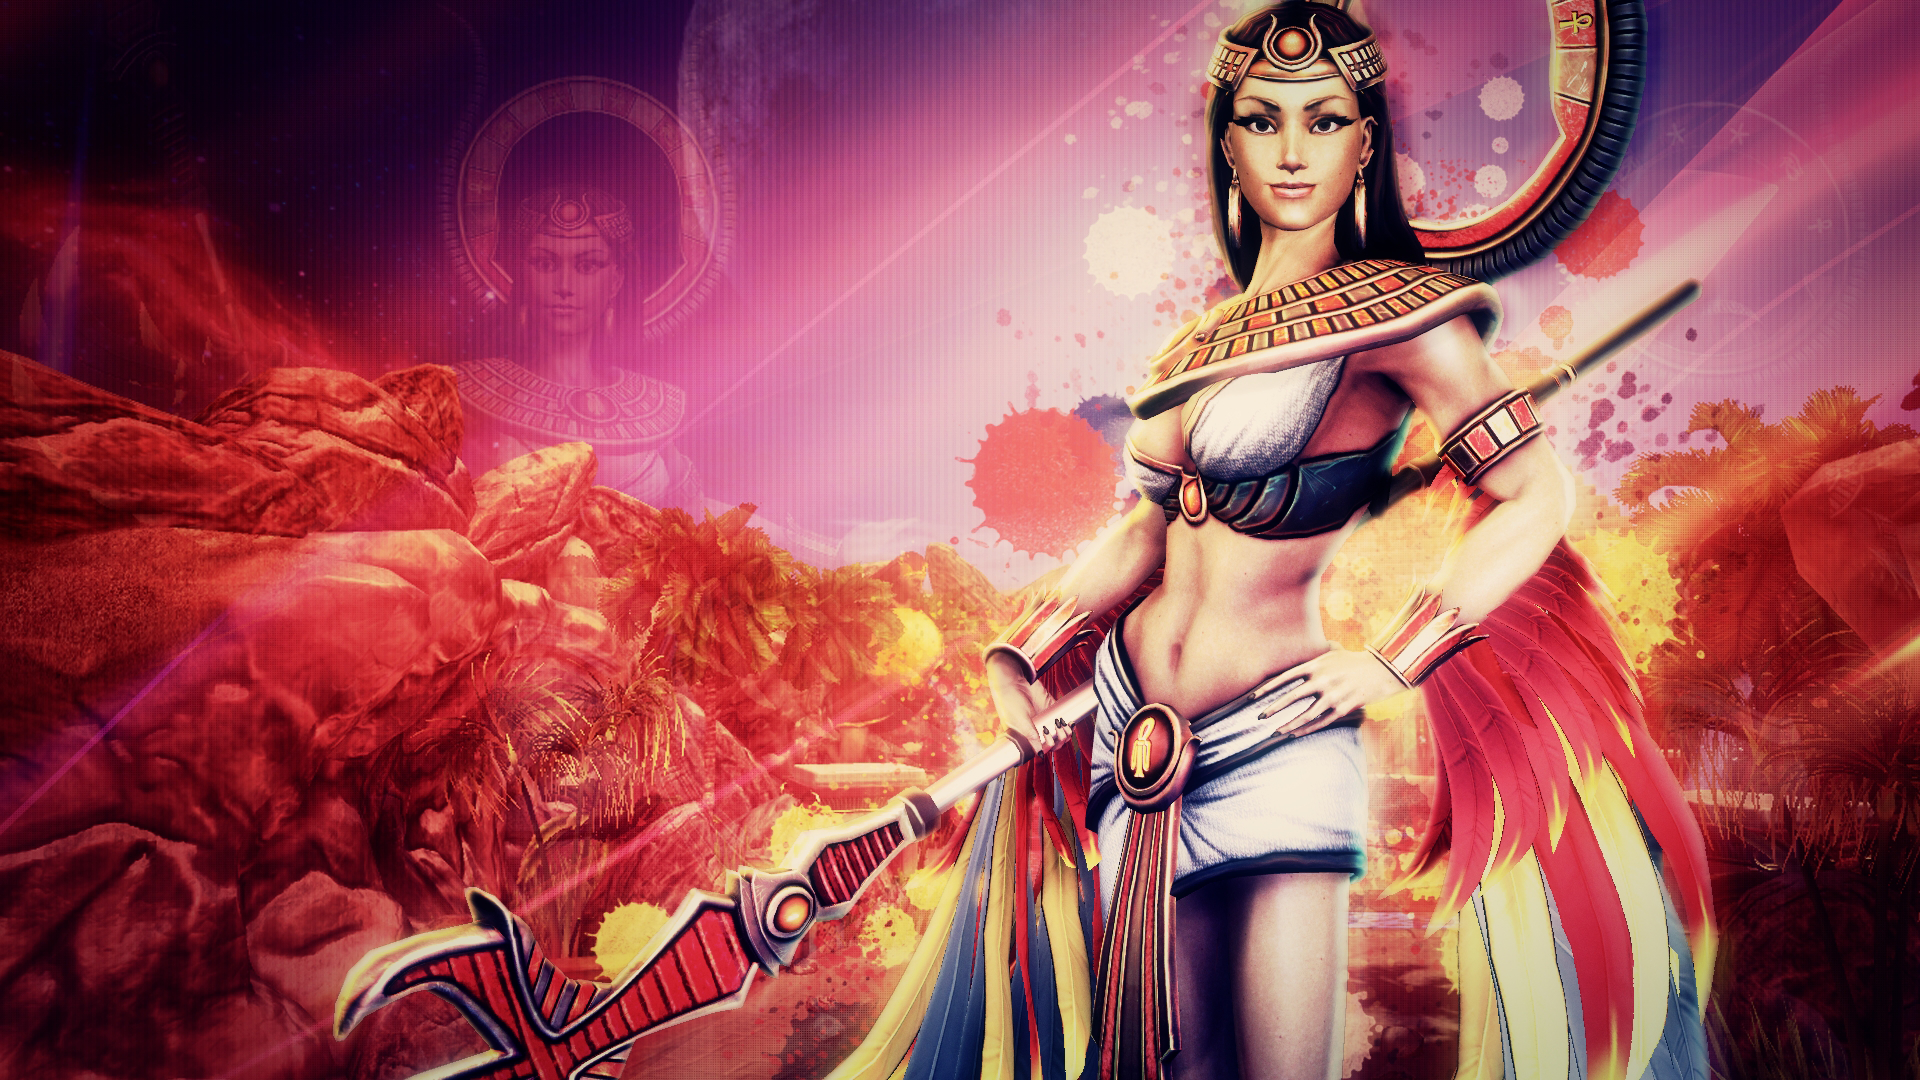 Isis, Goddess of Magic - SMITE - Wallpaper HD by Getsukeii